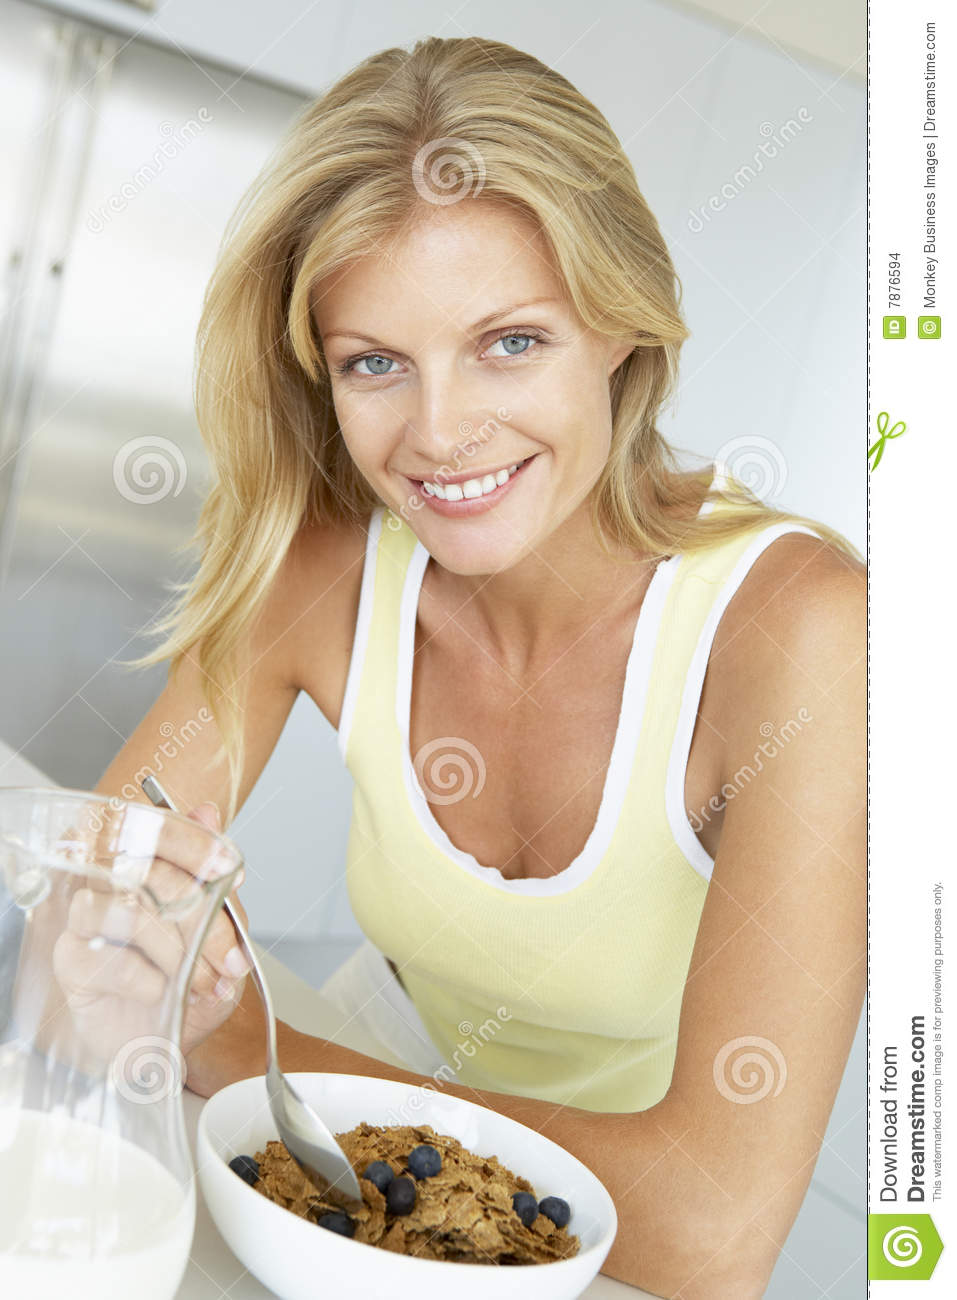 Download Mid Adult Woman Eating Cereal With Fruit Stock Photo - Image of color, diet: 7876594